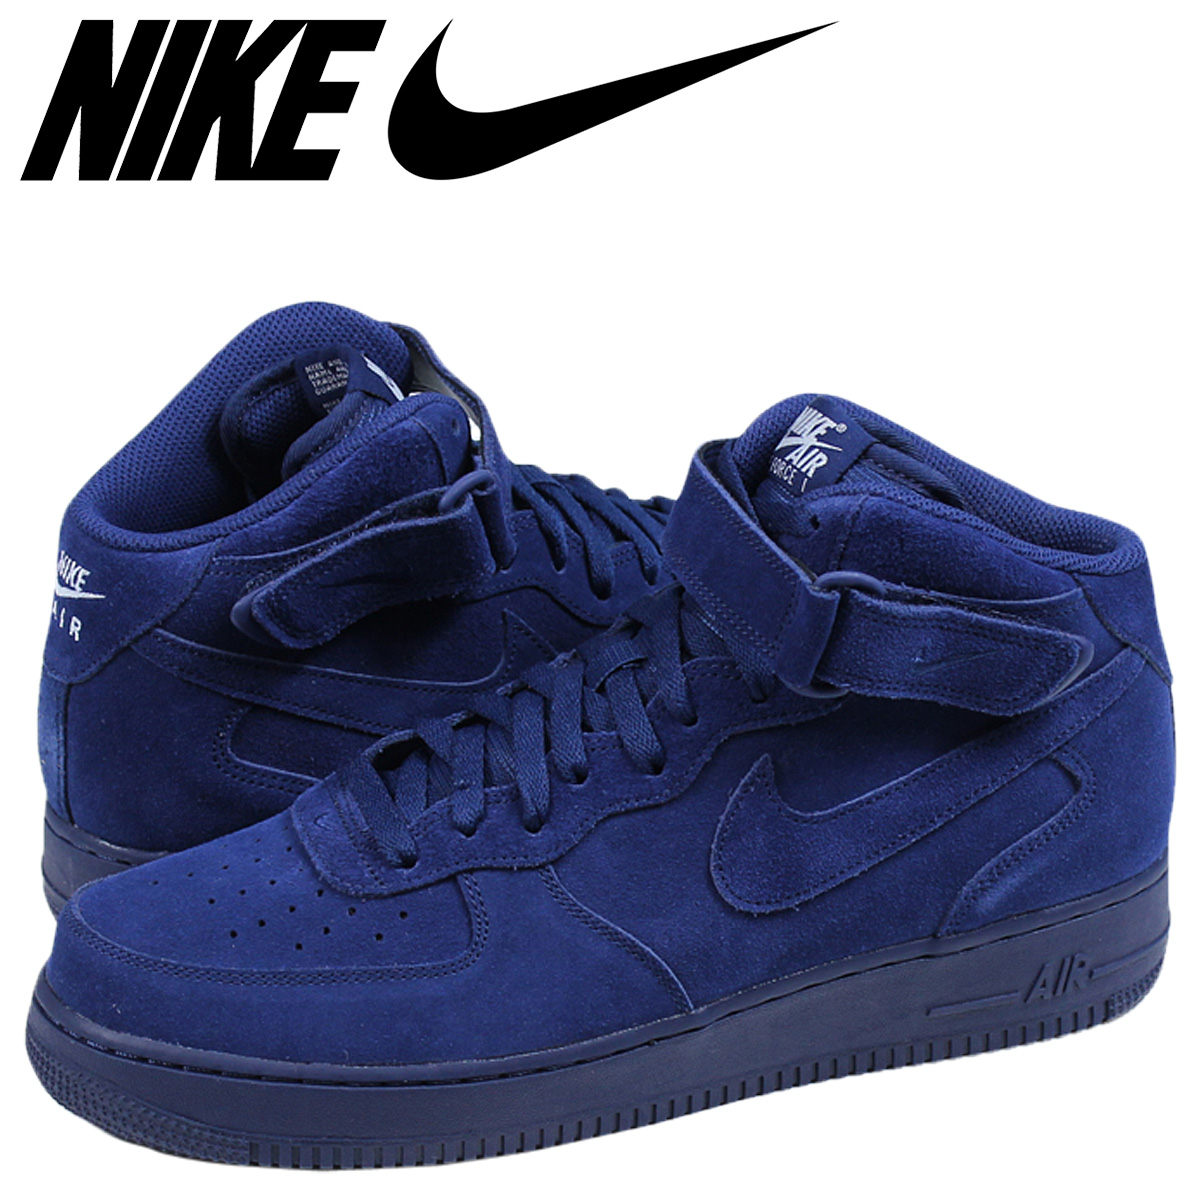 hot sale online 5bc3d a3d36 NIKE Nike air force sneakers men AIR FORCE 1 MID air force 1 315,123-410 ...